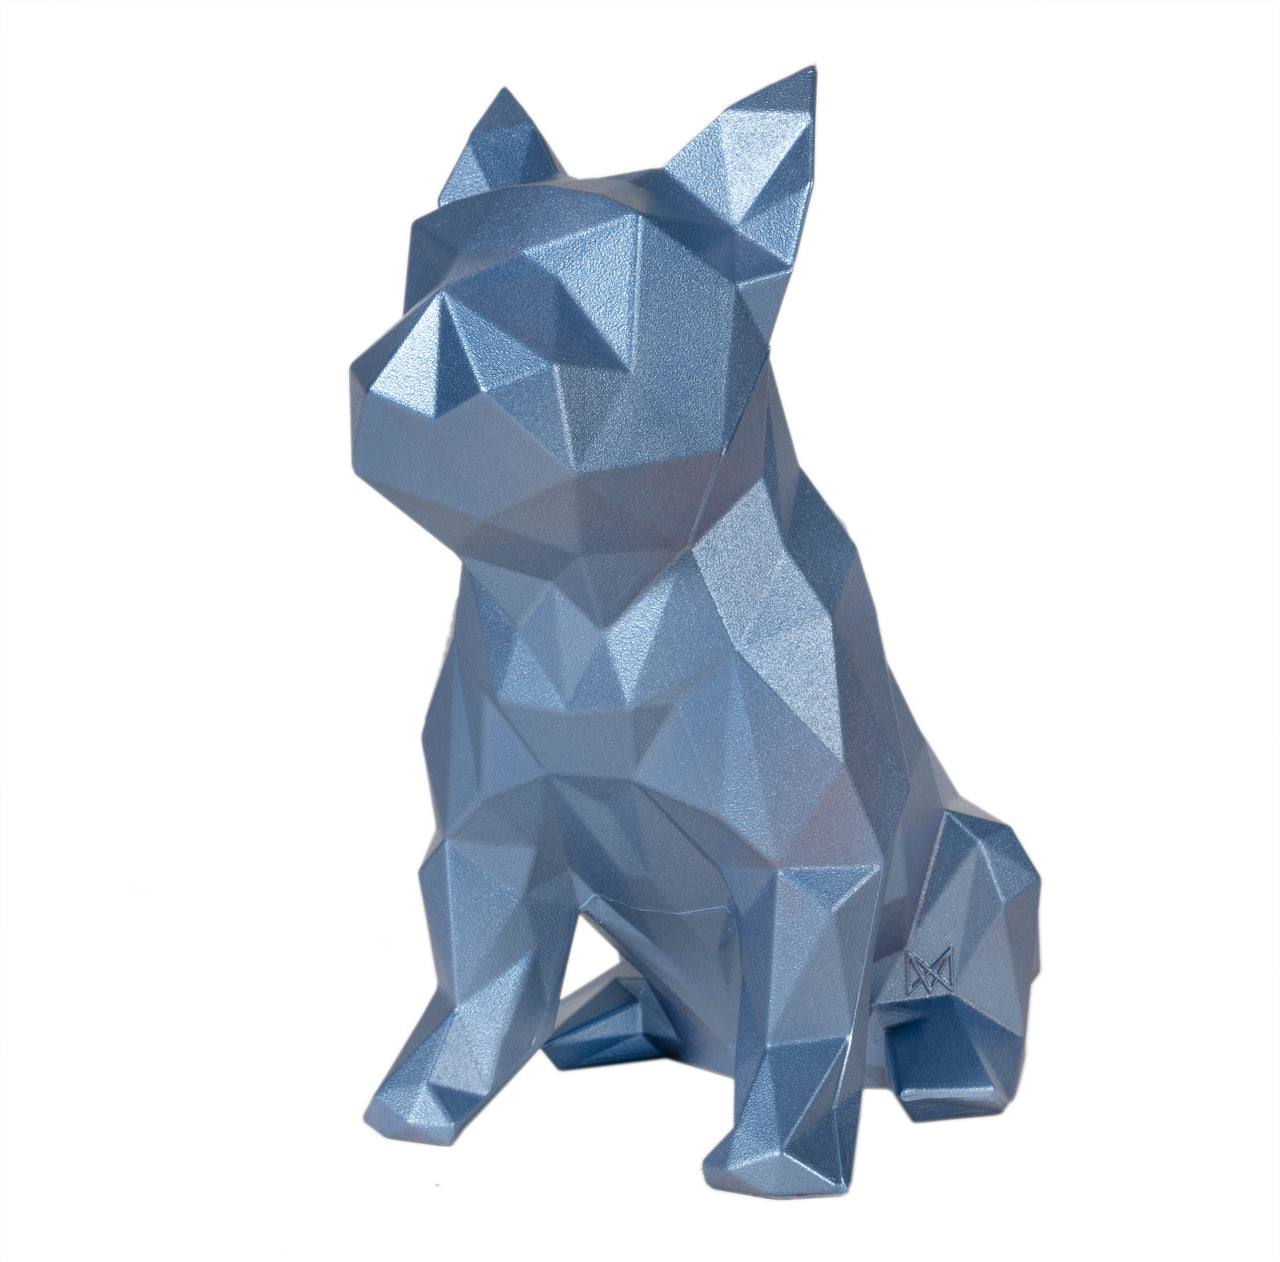 French Bulldog Geometric Sculpture - Frank in Metallic blue